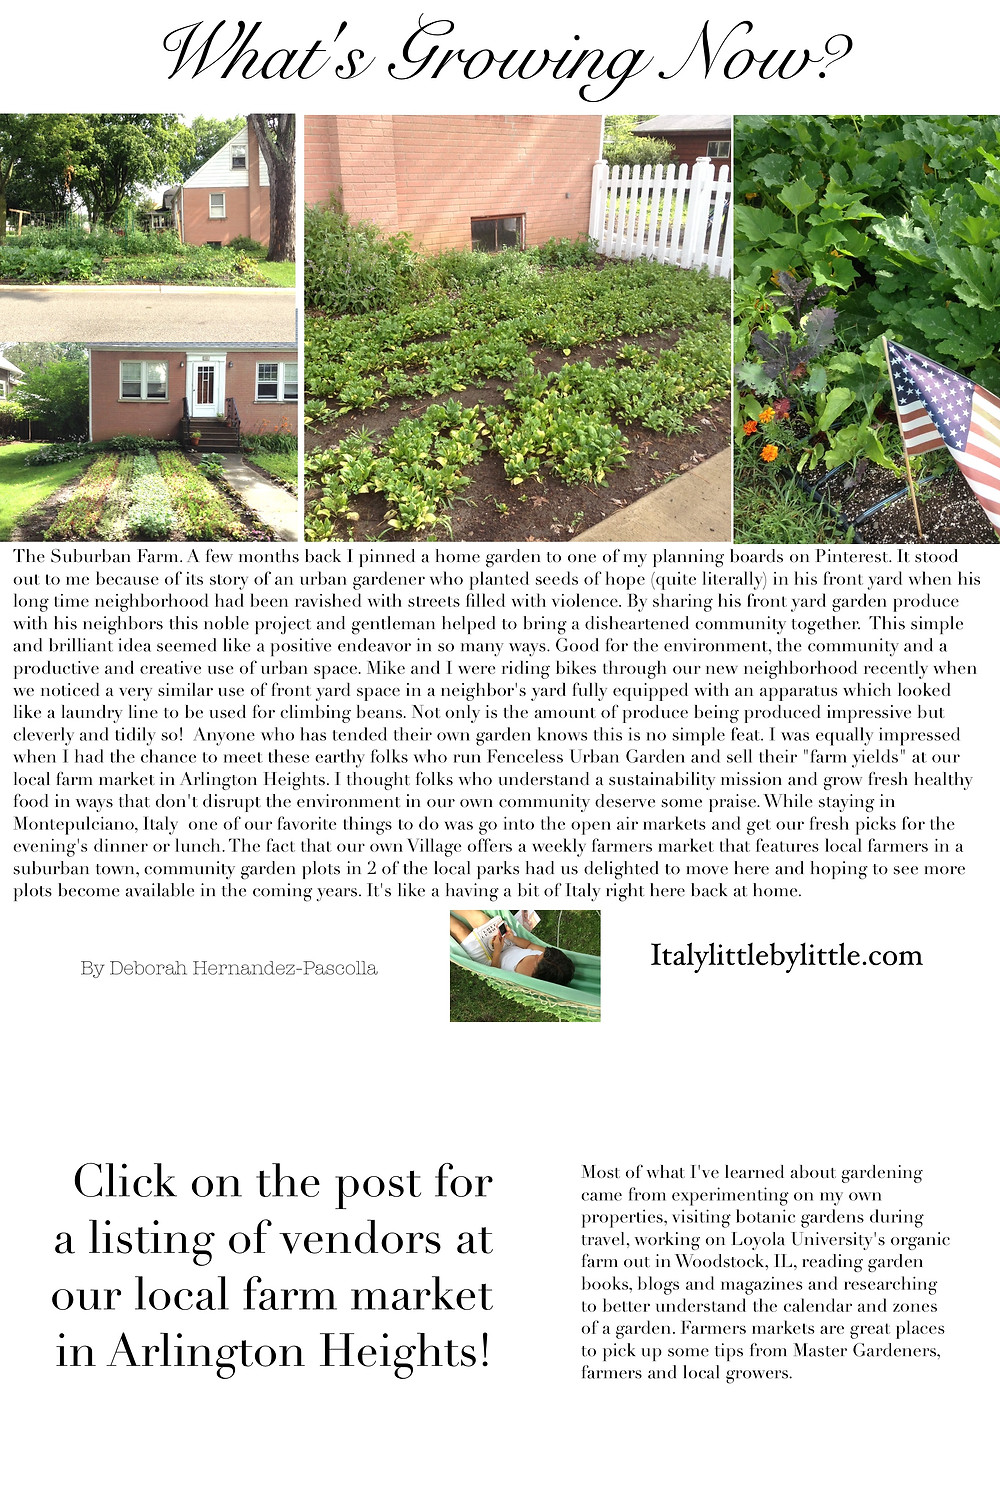 Suburban Farm - growing productive, safe and healthy crops in town